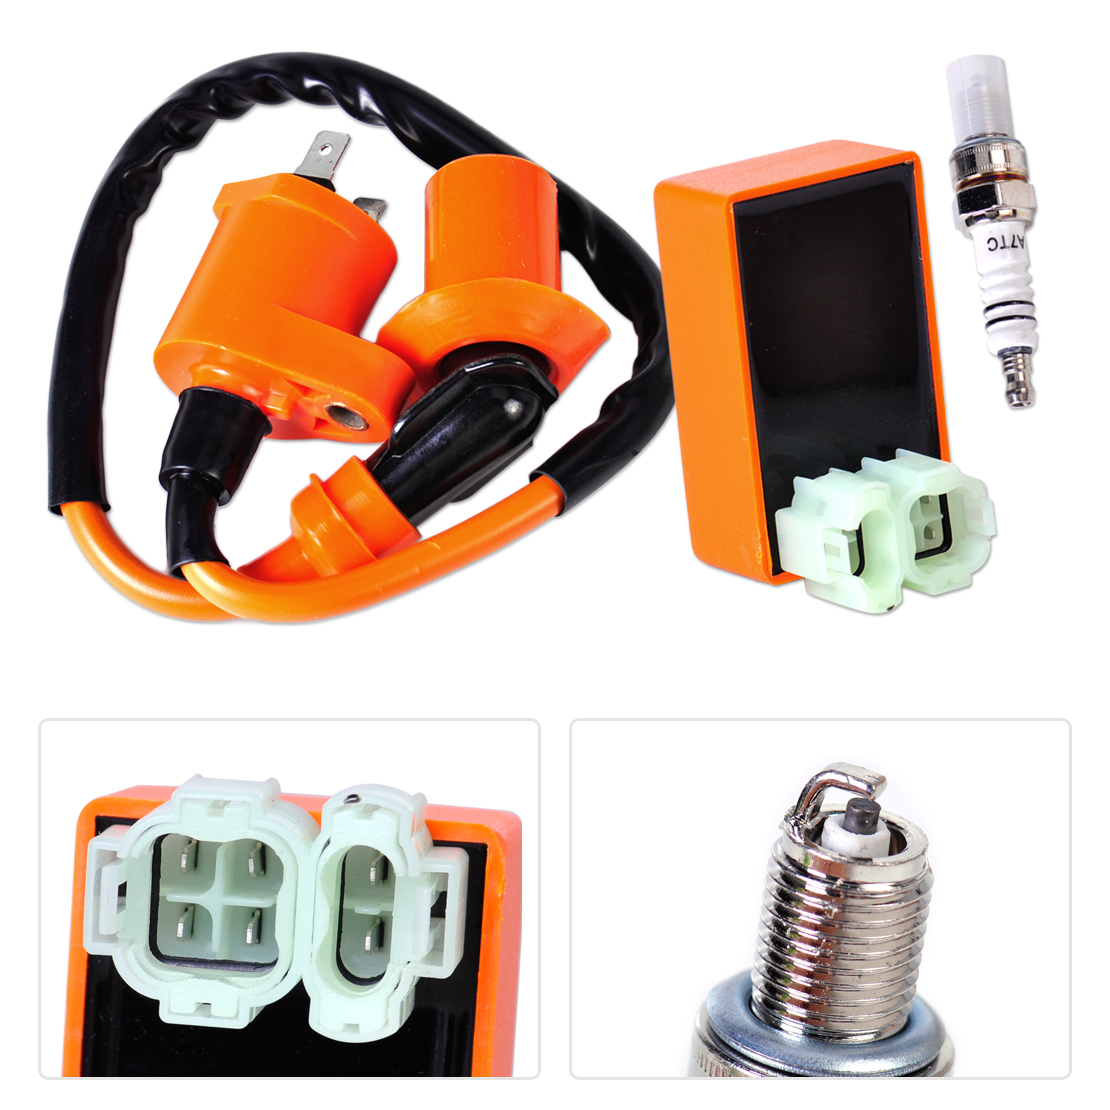 DWCX Racing Ignition Coil + Orange 6Pin CDI Box + Spark Plug for GY6 50cc 70cc 90cc 125cc 150cc Scooter Go Kart 4-stroke engines